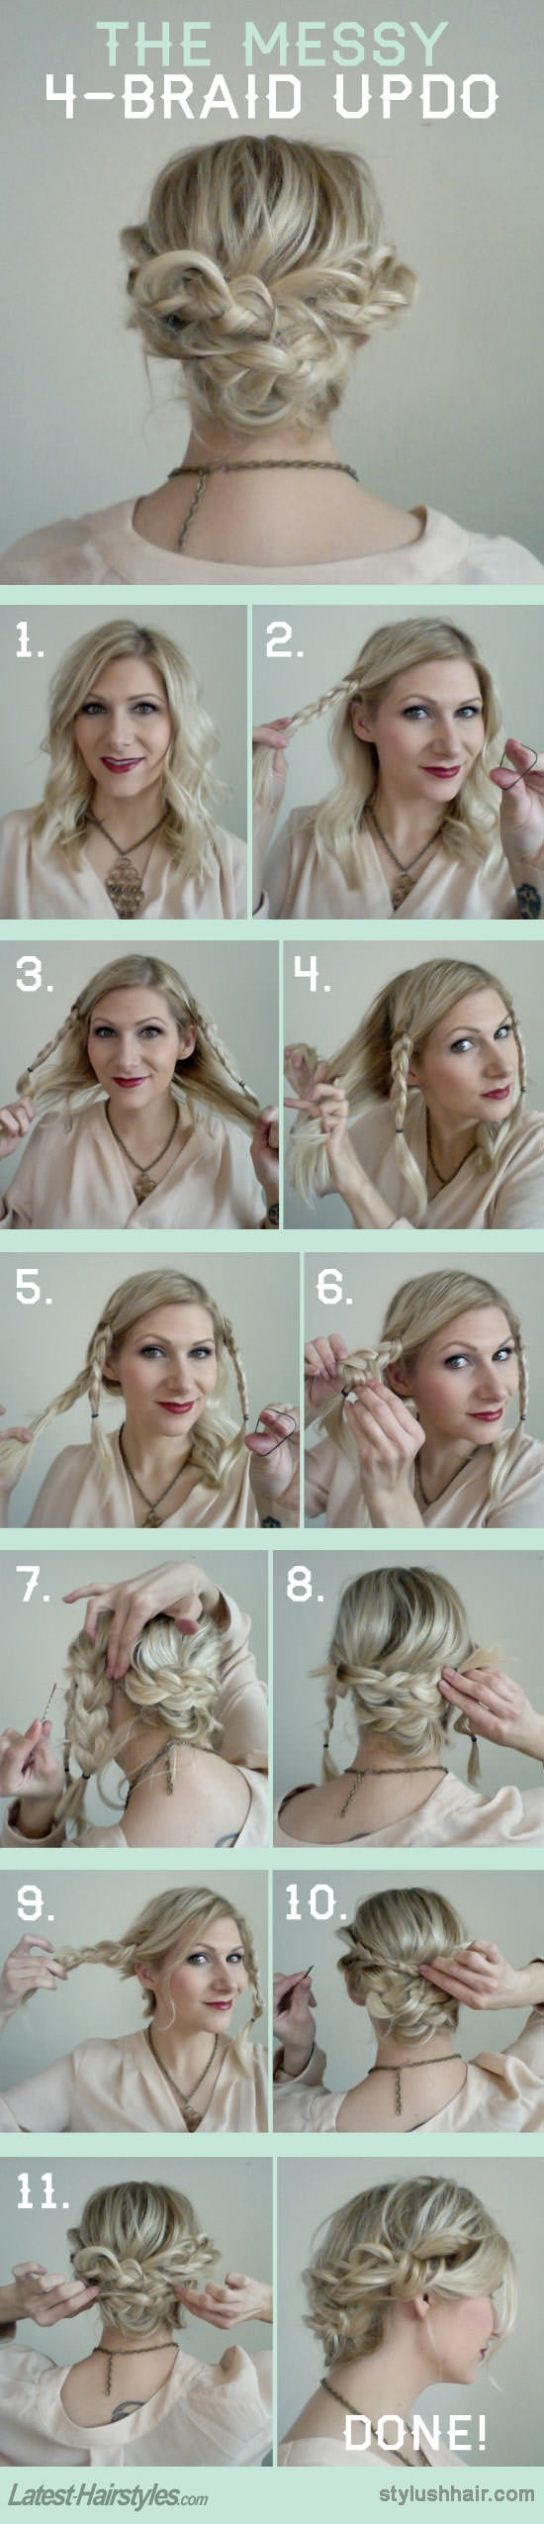 four-braid updo